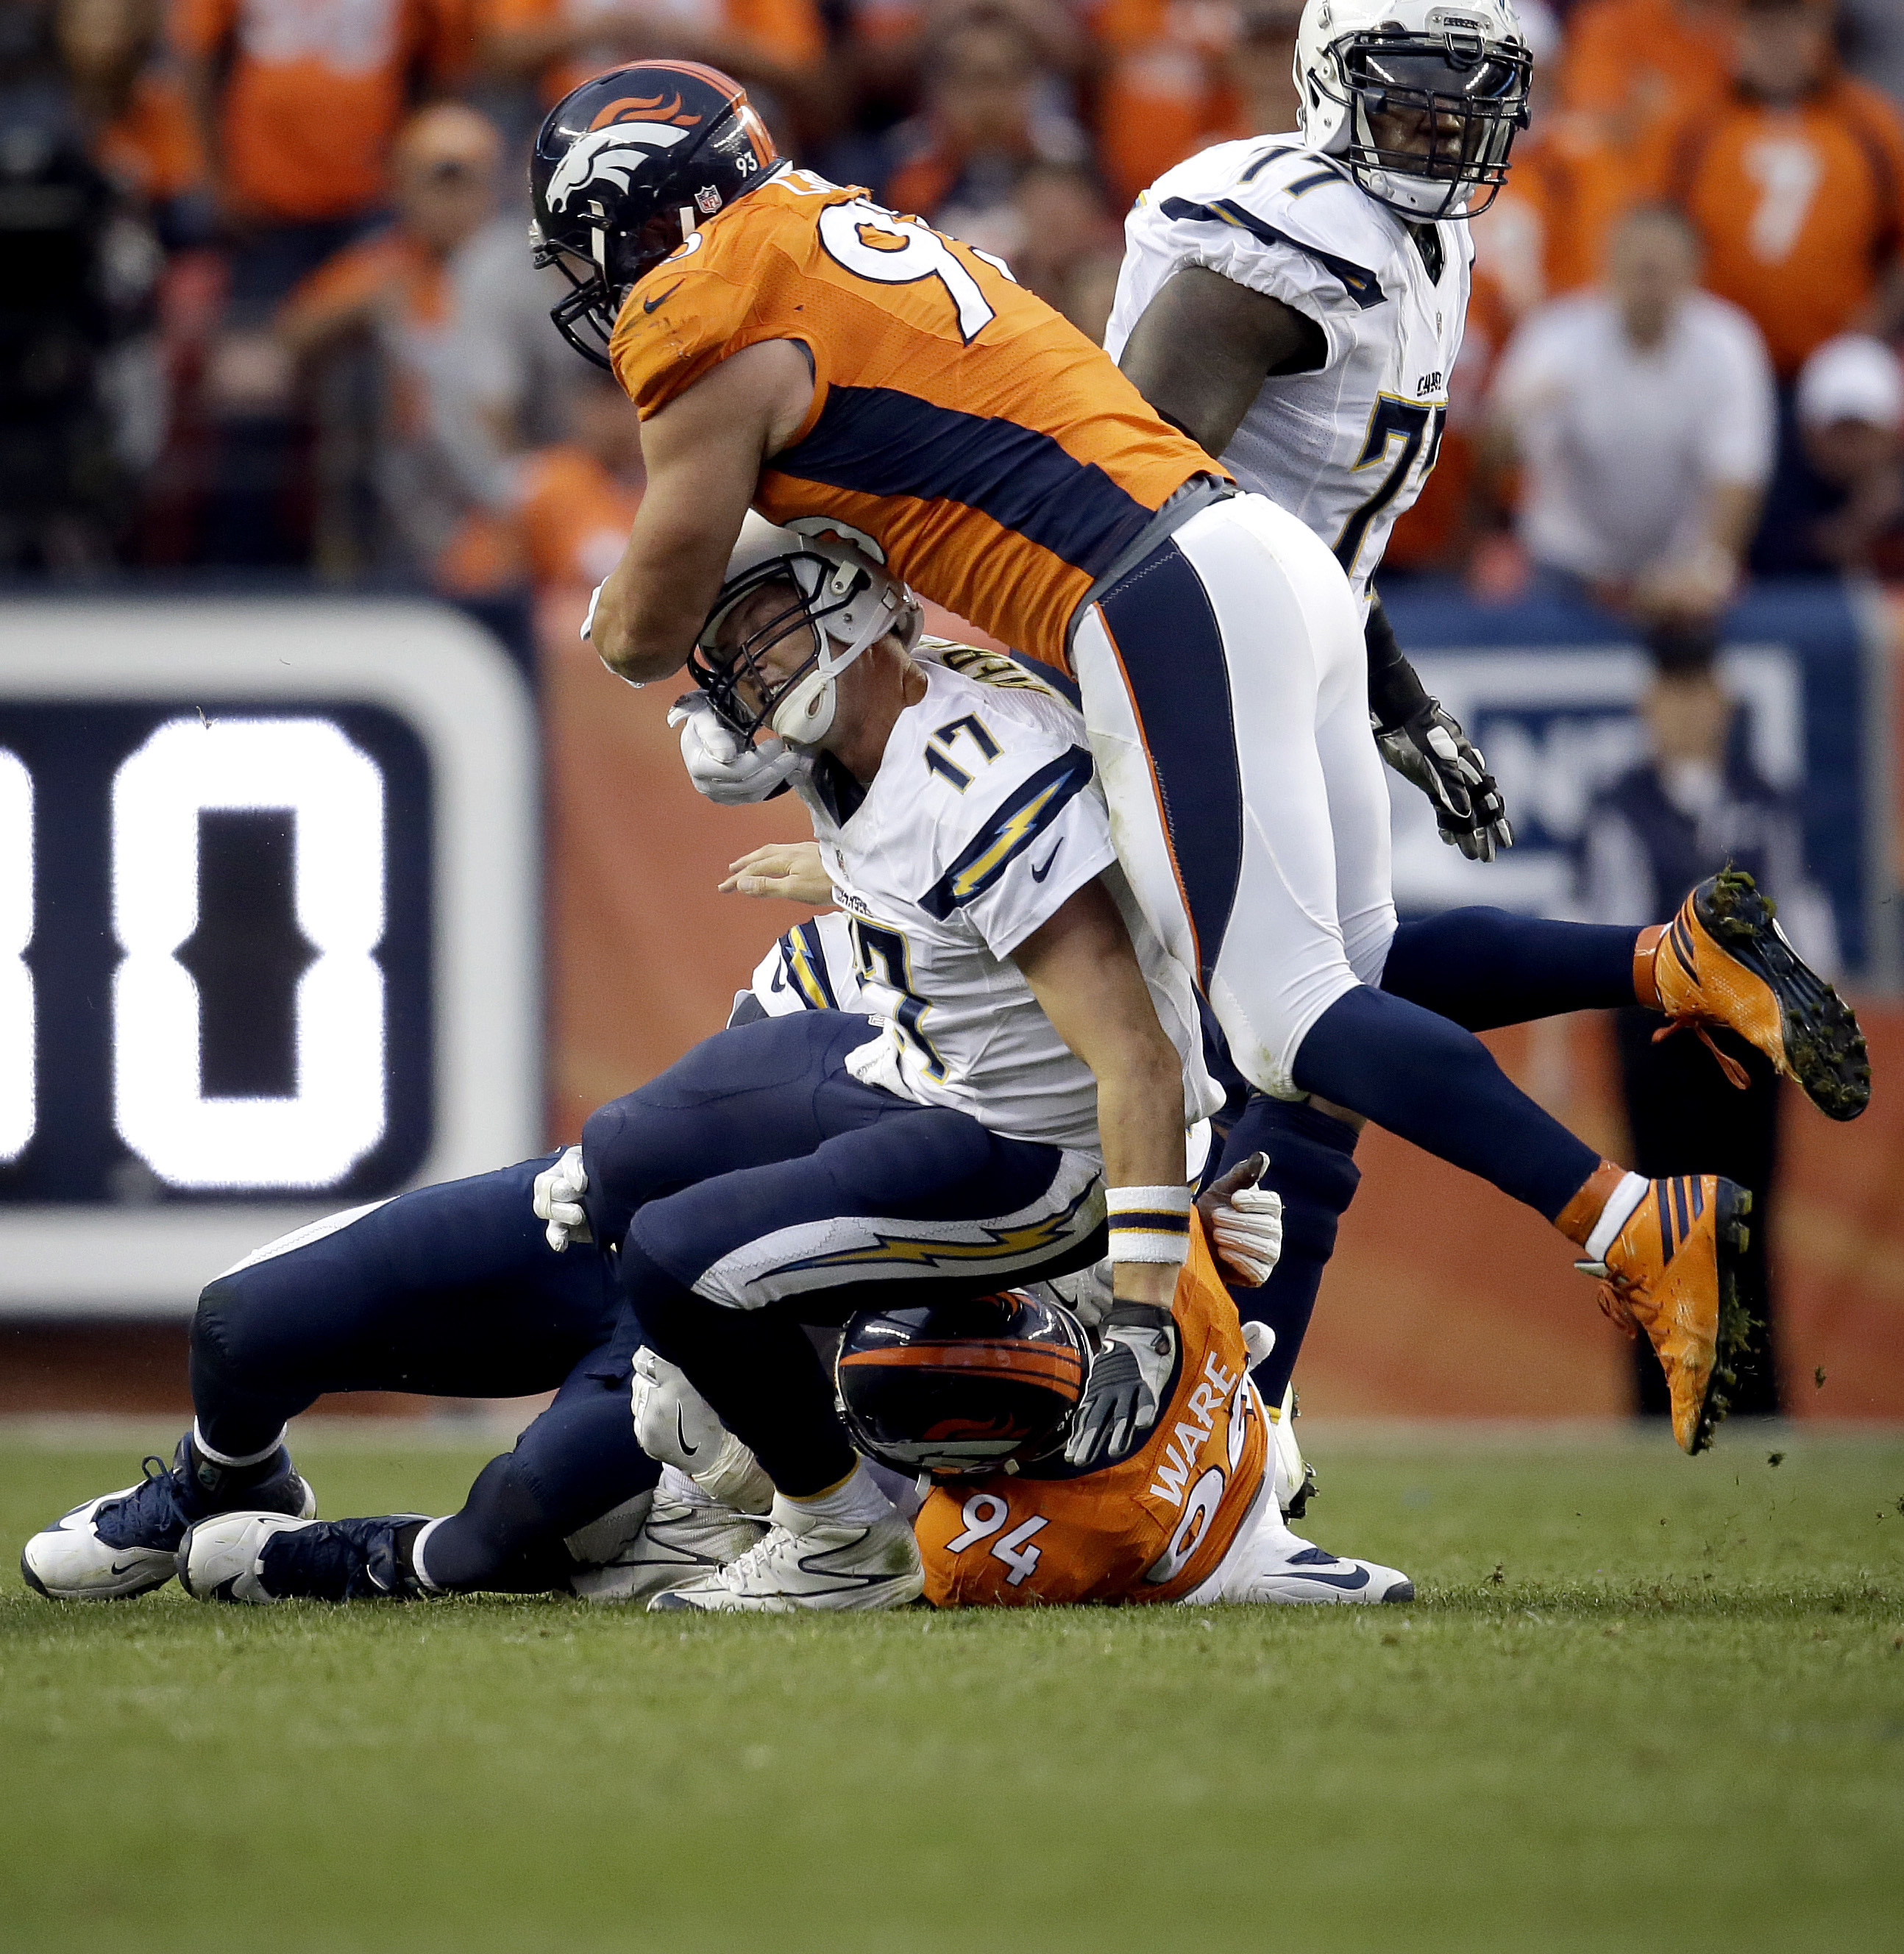 Denver Broncos defensive end Jared Crick (93) and linebacker DeMarcus Ware (94) hit San Diego Chargers quarterback Philip Rivers (17) after the throw during the second half of an NFL football game, Sunday, Oct. 30, 2016, in Denver. The Broncos won 27-19.